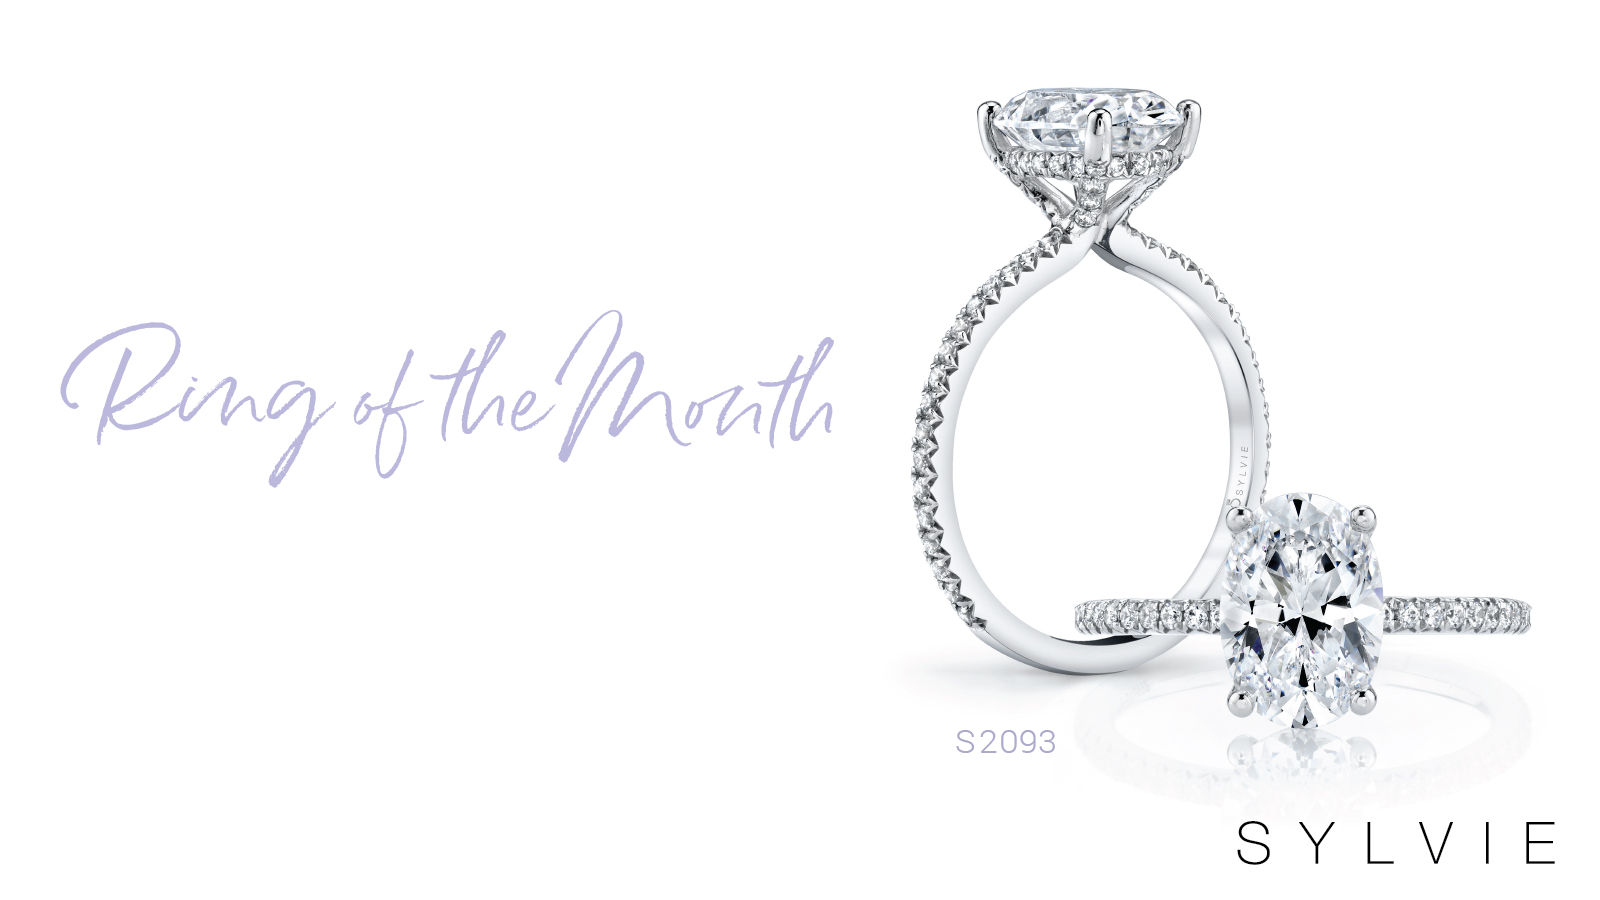 Sylvie's Ring of the Month - November